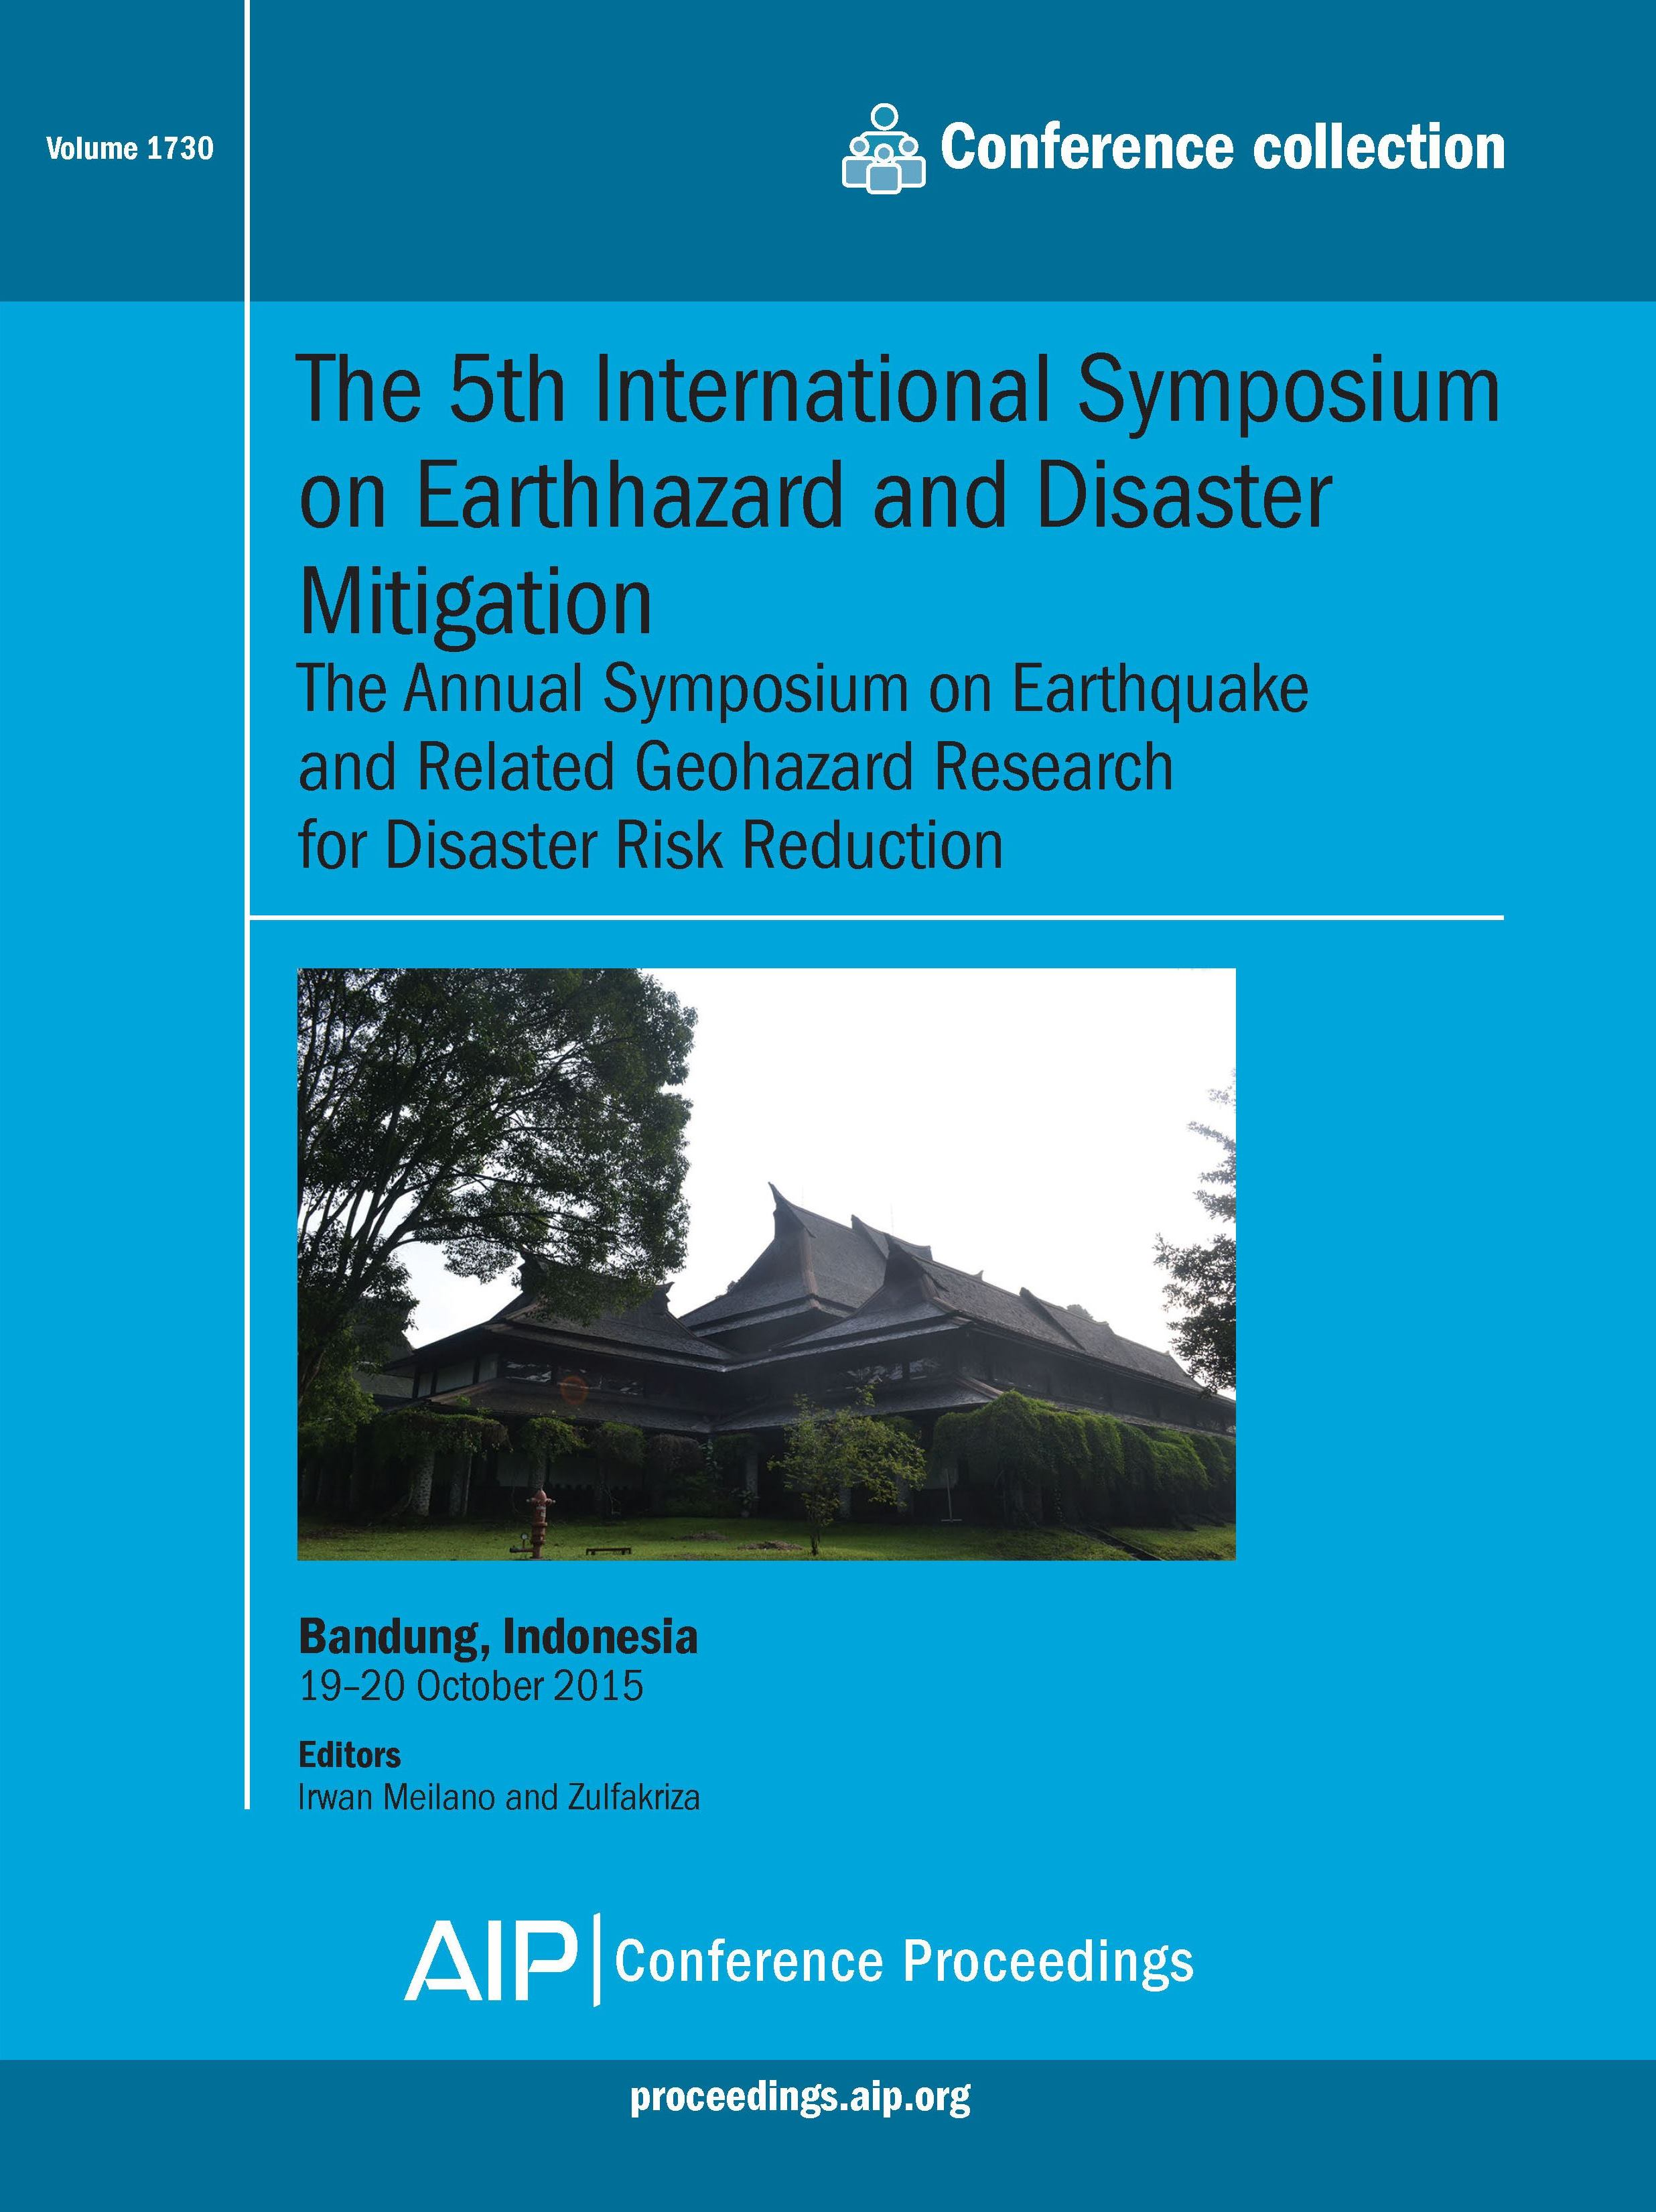 Volume 1730: The 5th International Symposium on Earthhazard and